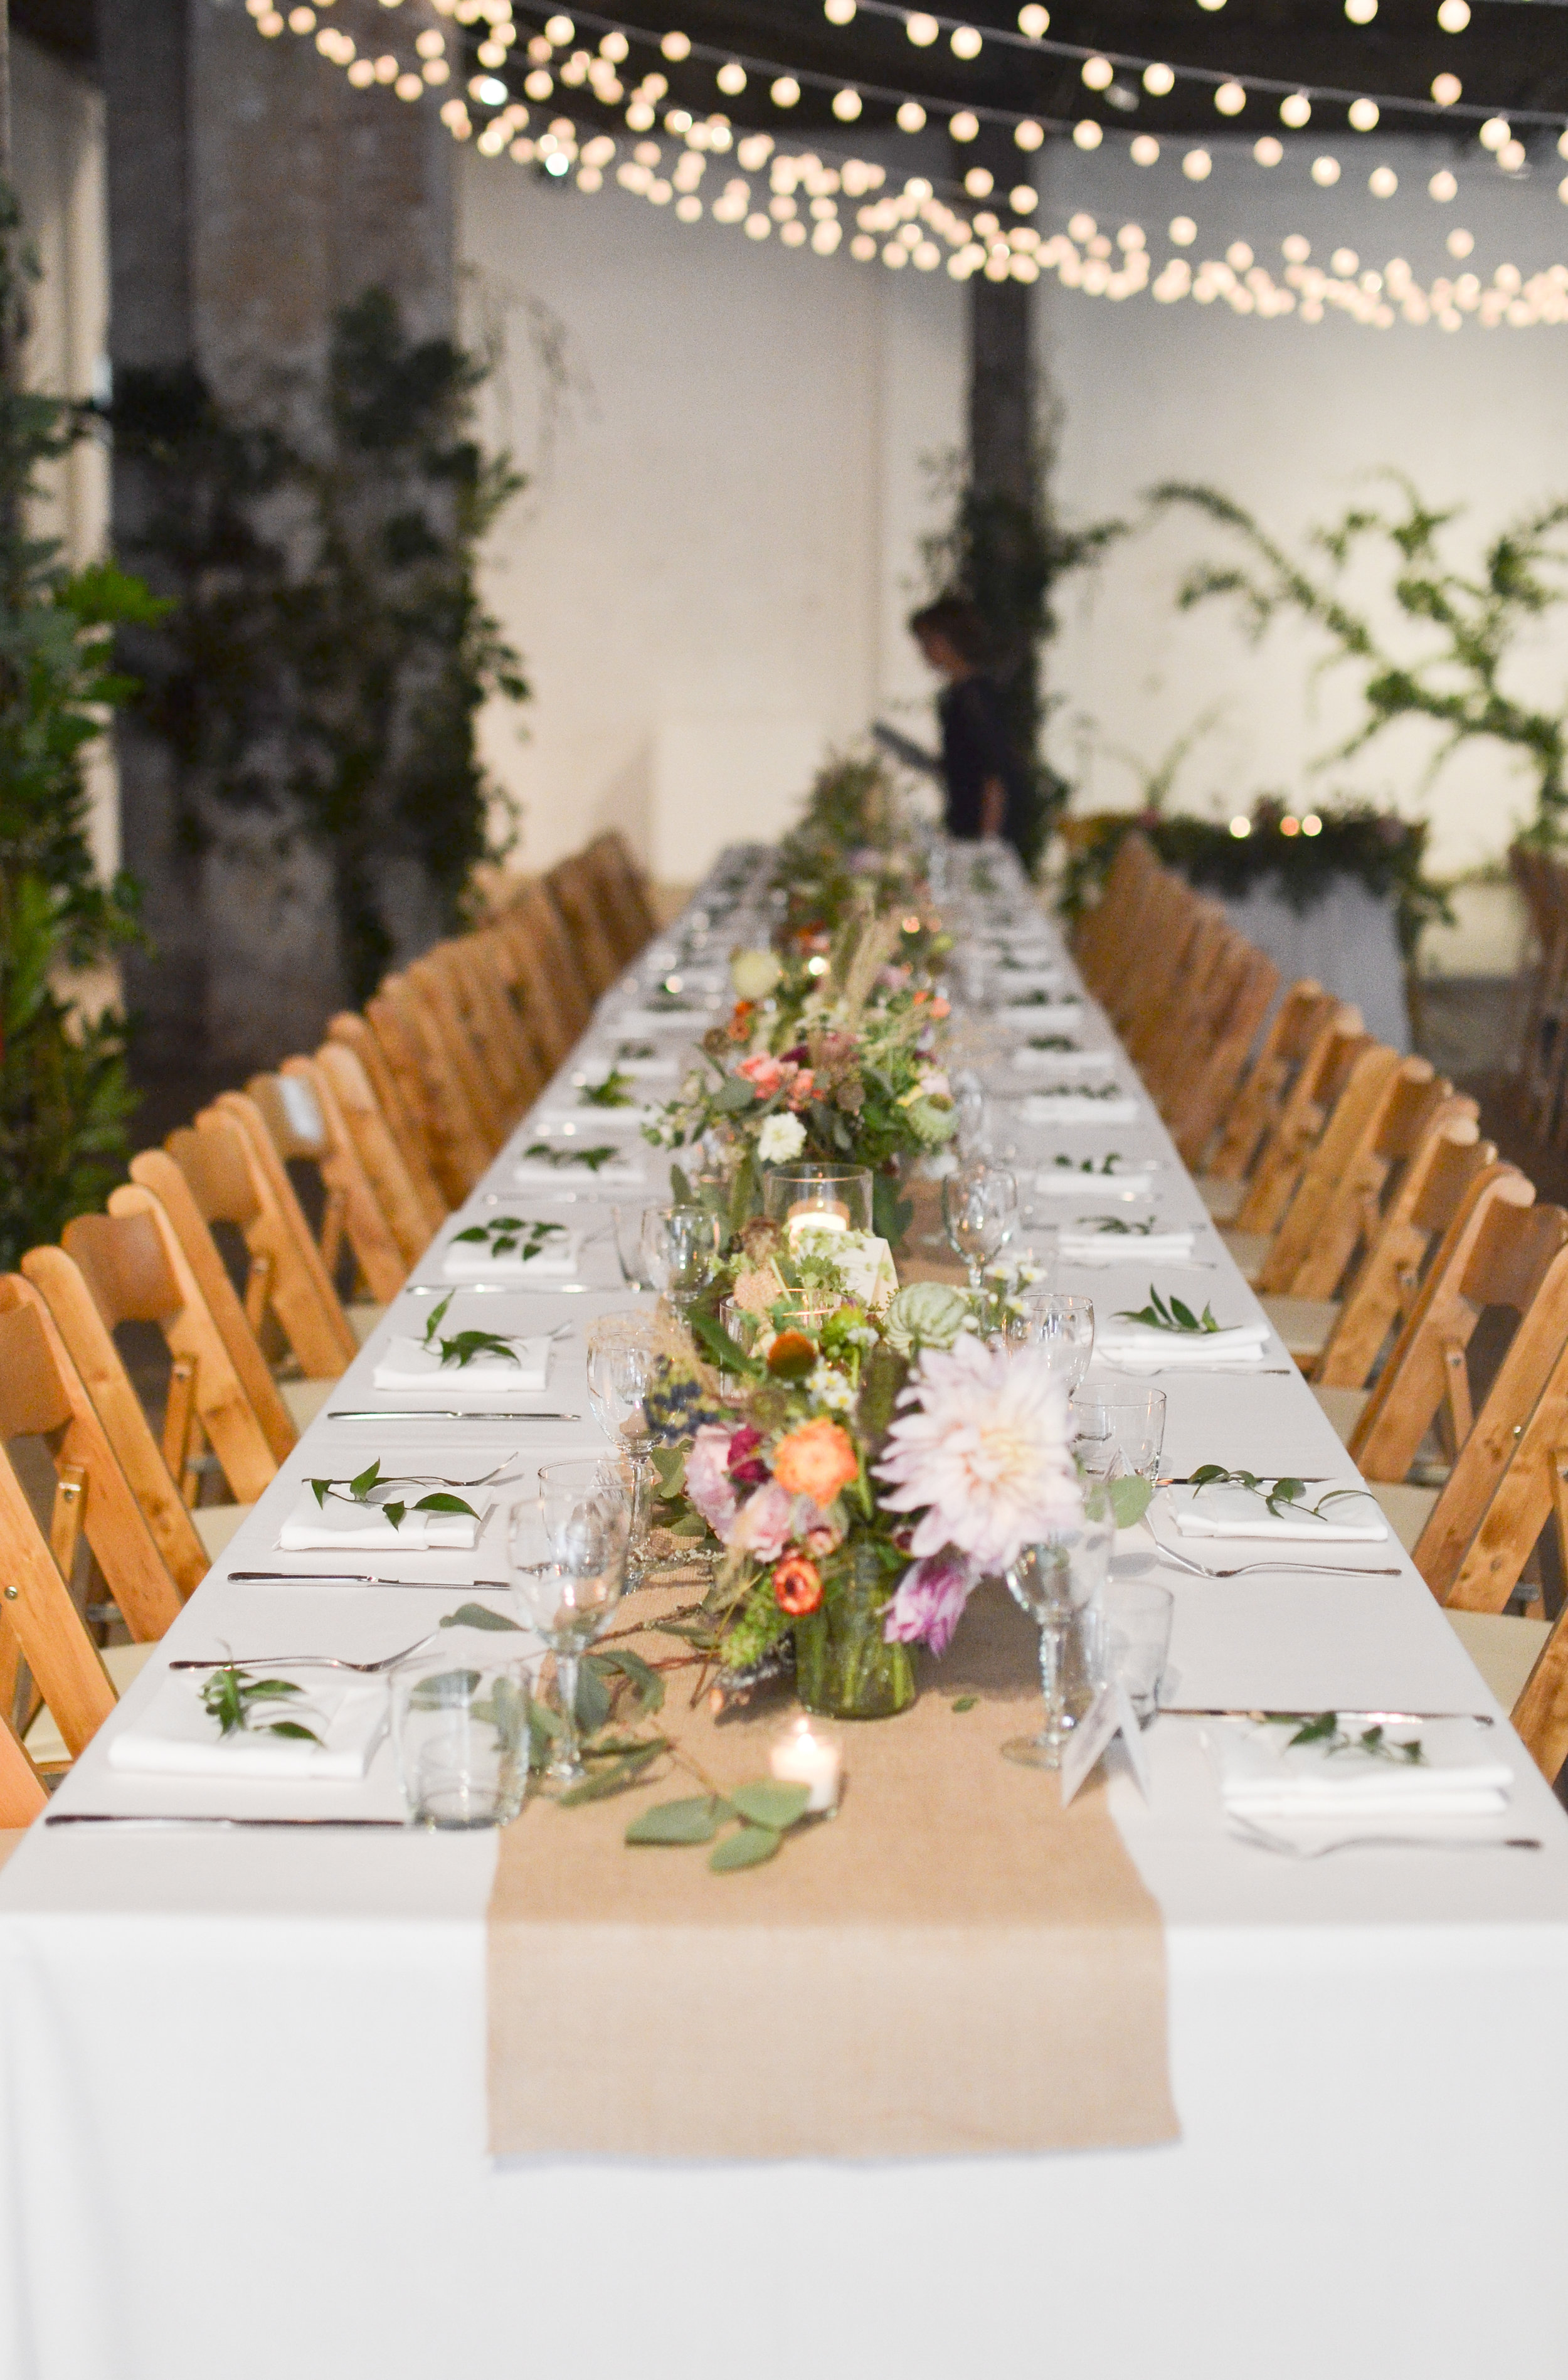 The table settings and centerpieces for the wild garden July wedding